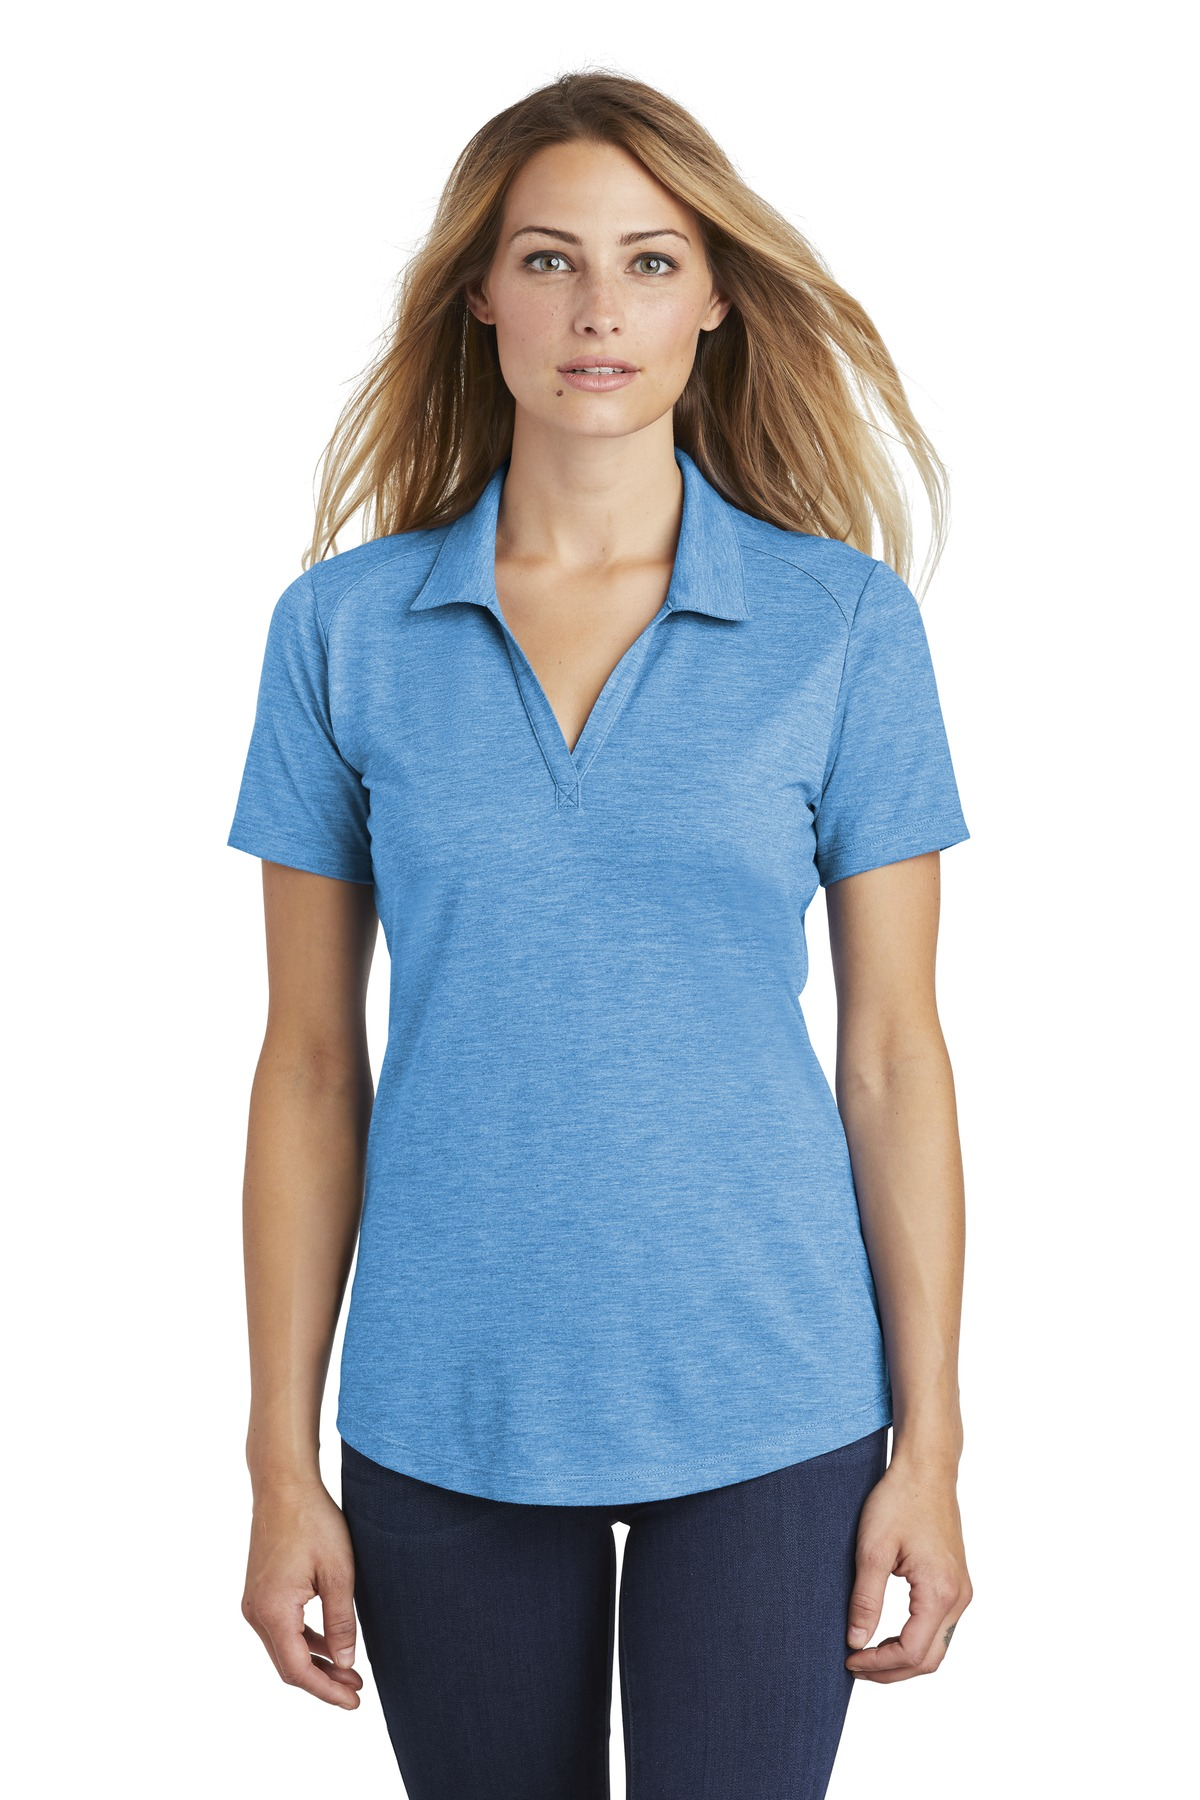 Sport-Tek  ®  Ladies PosiCharge  ®  Tri-Blend Wicking Polo. LST405 - Pond Blue Heather